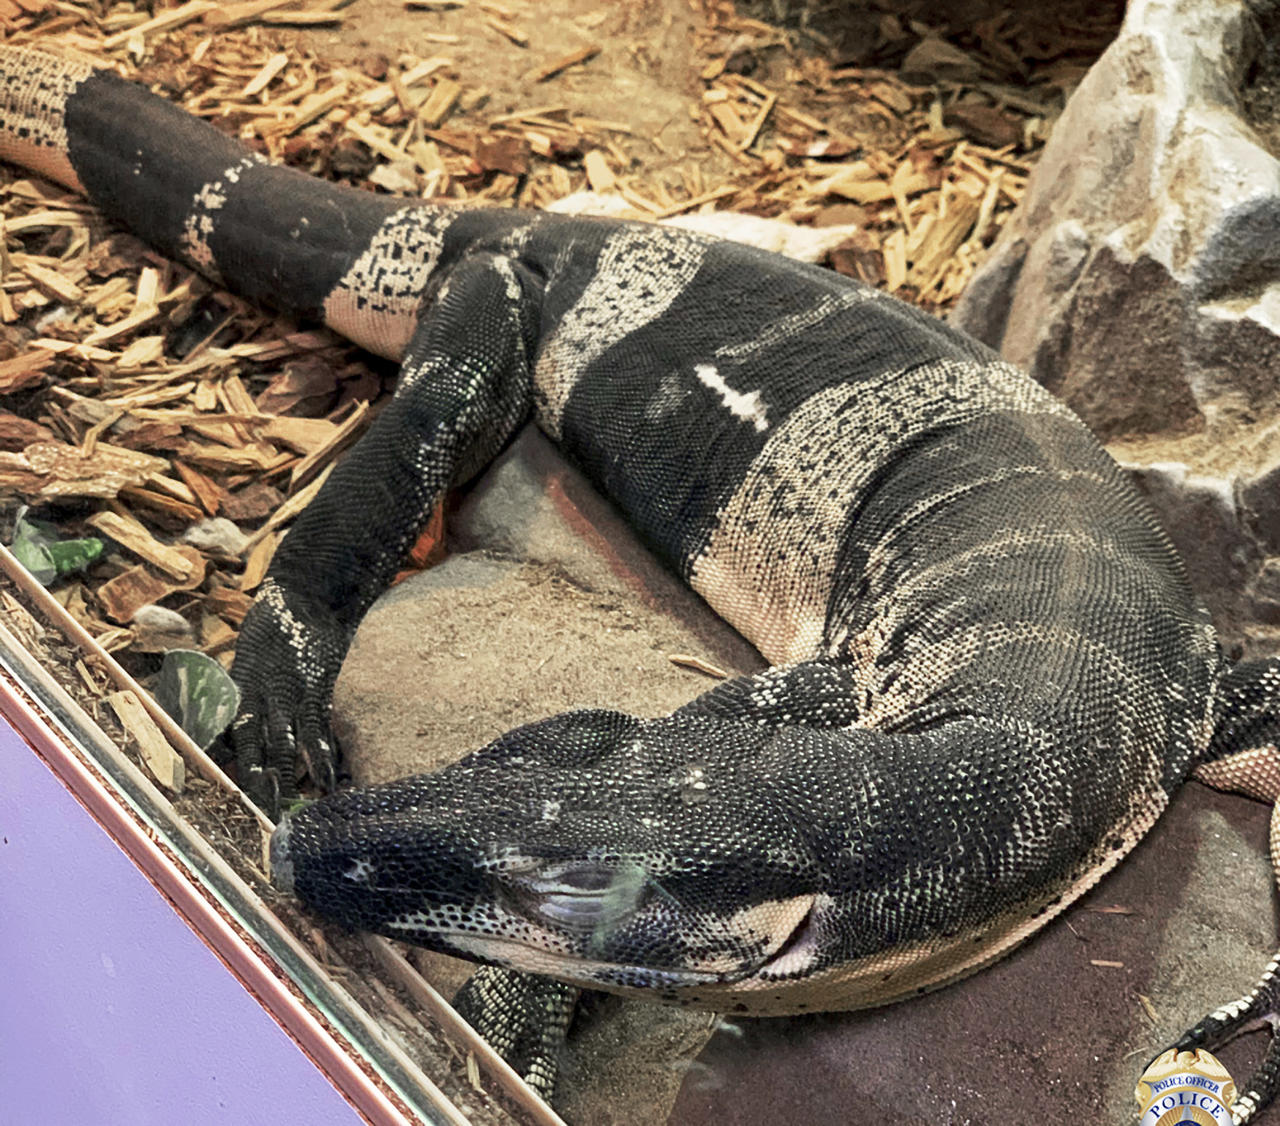 California police recover lizards stolen from reptile store